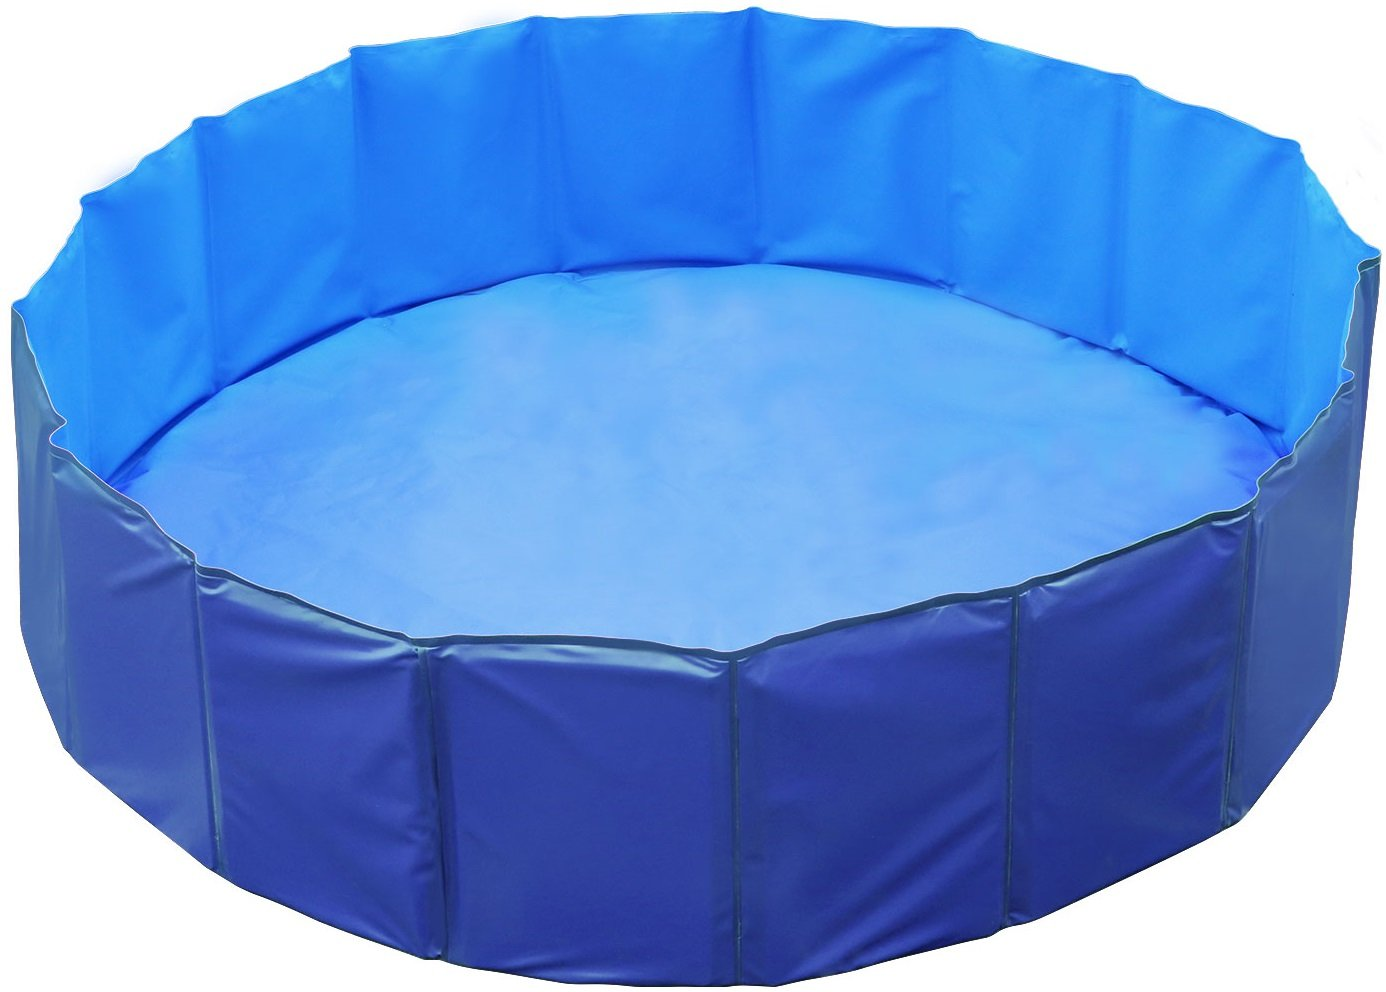 GPCT [63 INCH Foldable/Portable [Collapsible] Large Dog Pet Bathing Swimming Pool. Durable, Heavy Duty, Bathing Bath Tub Wash Pond Water Washer for Toddlers, Dogs, Cats, Pets [Blue]